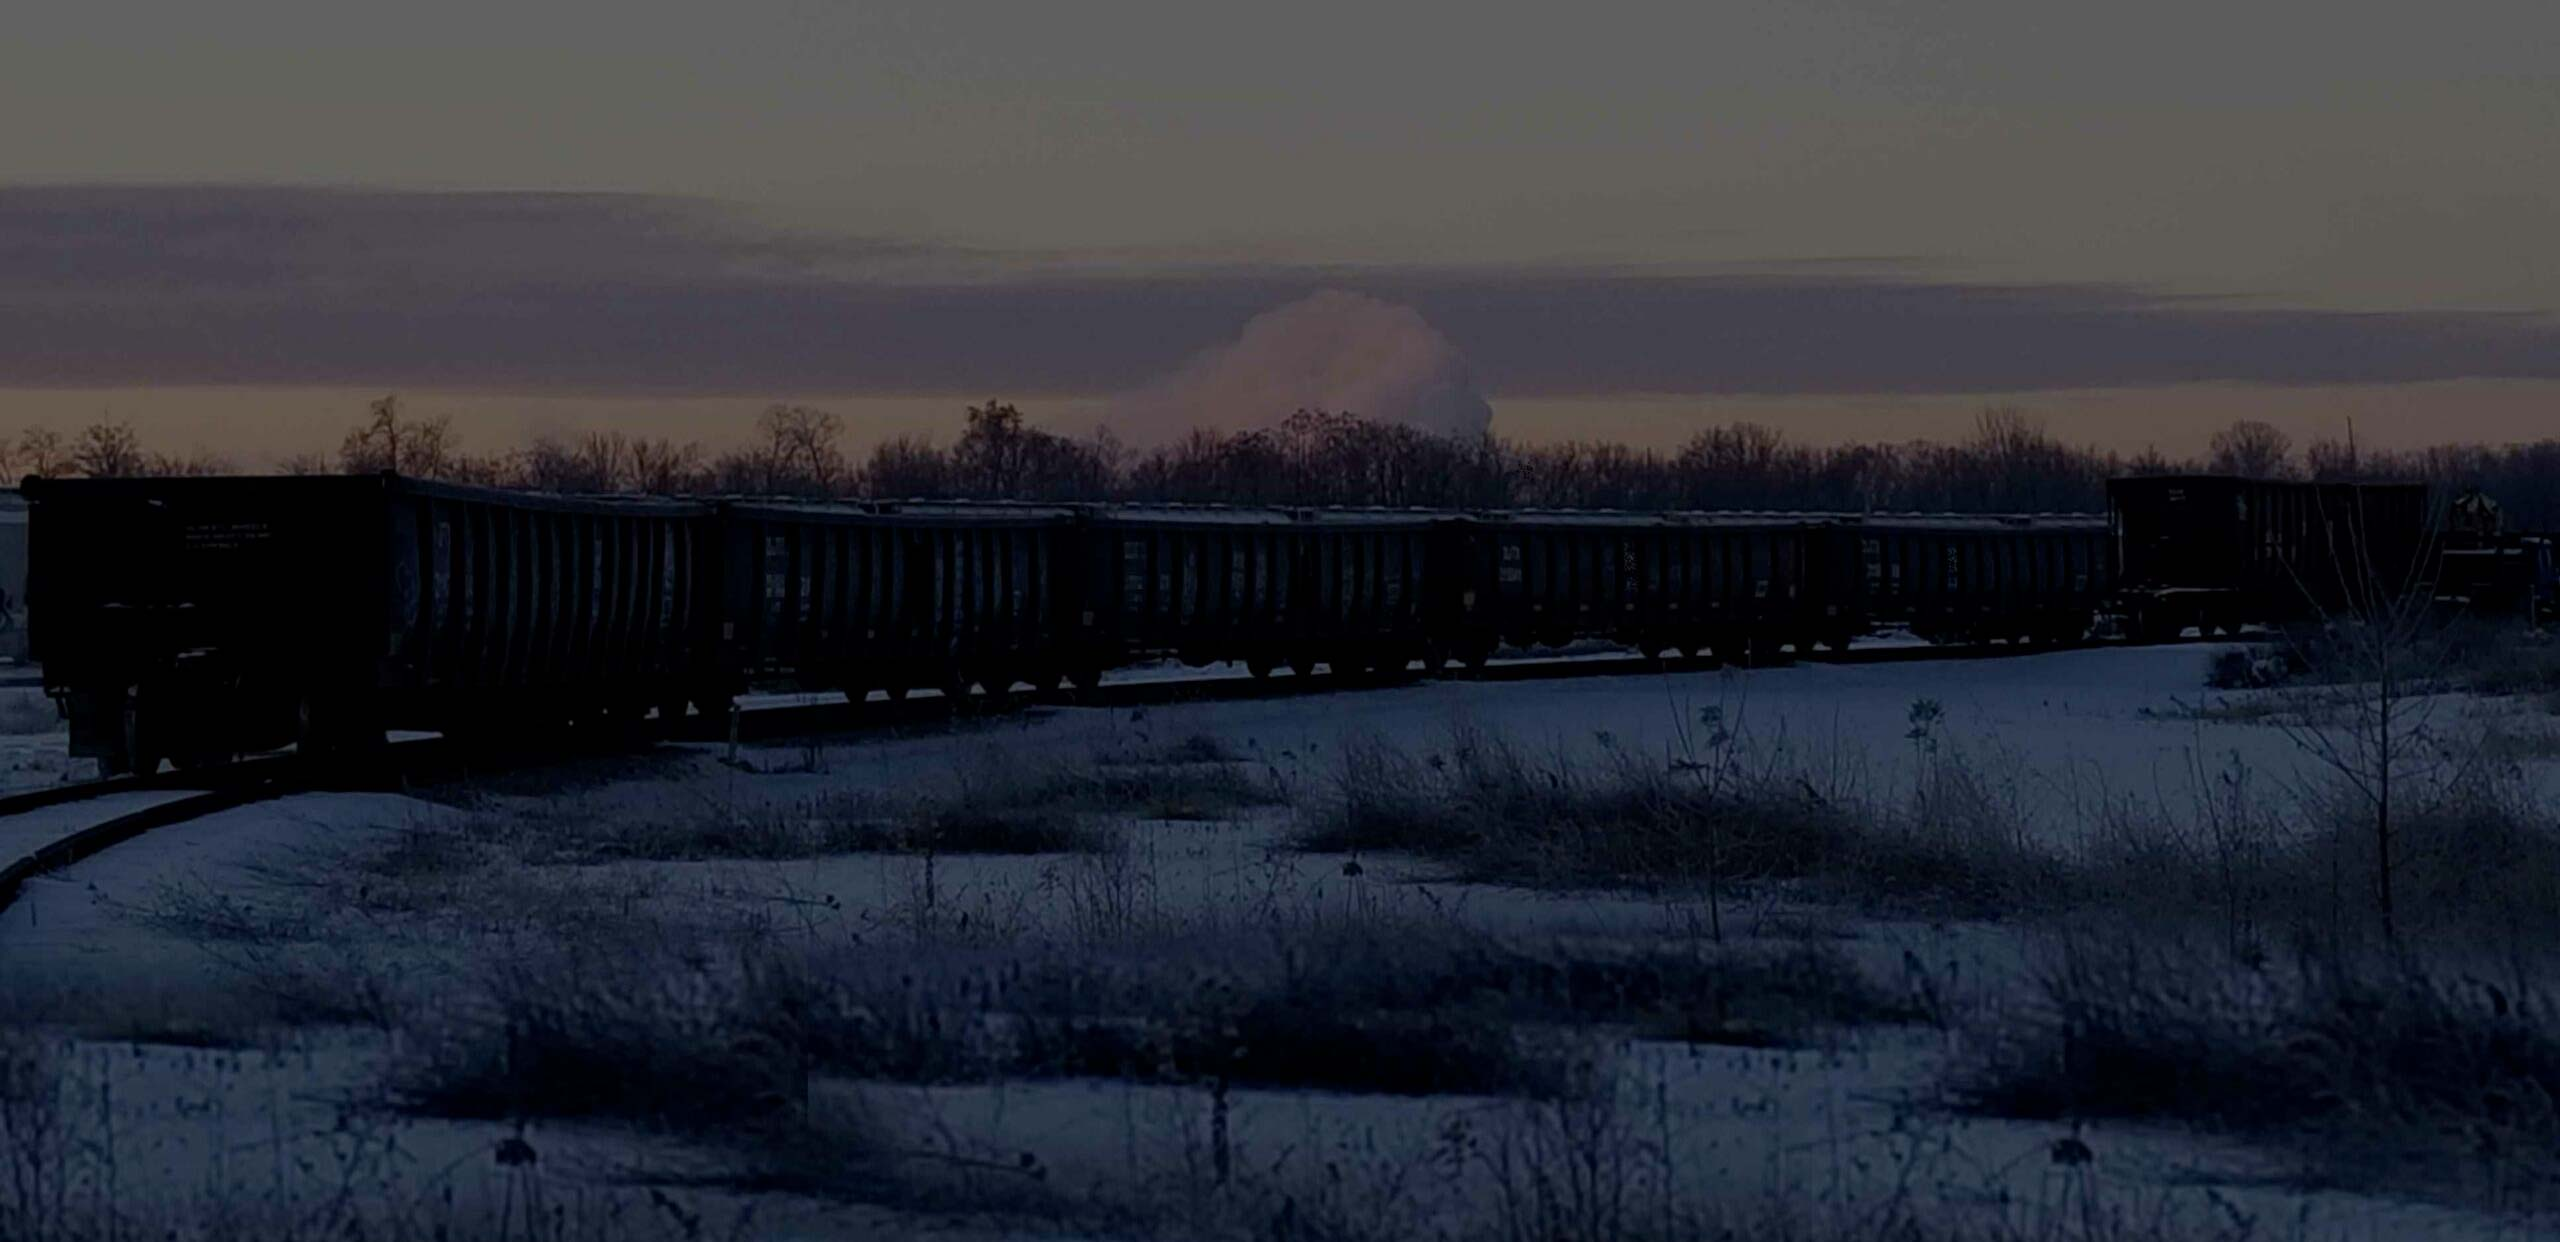 Ohio Freight Car Services background image